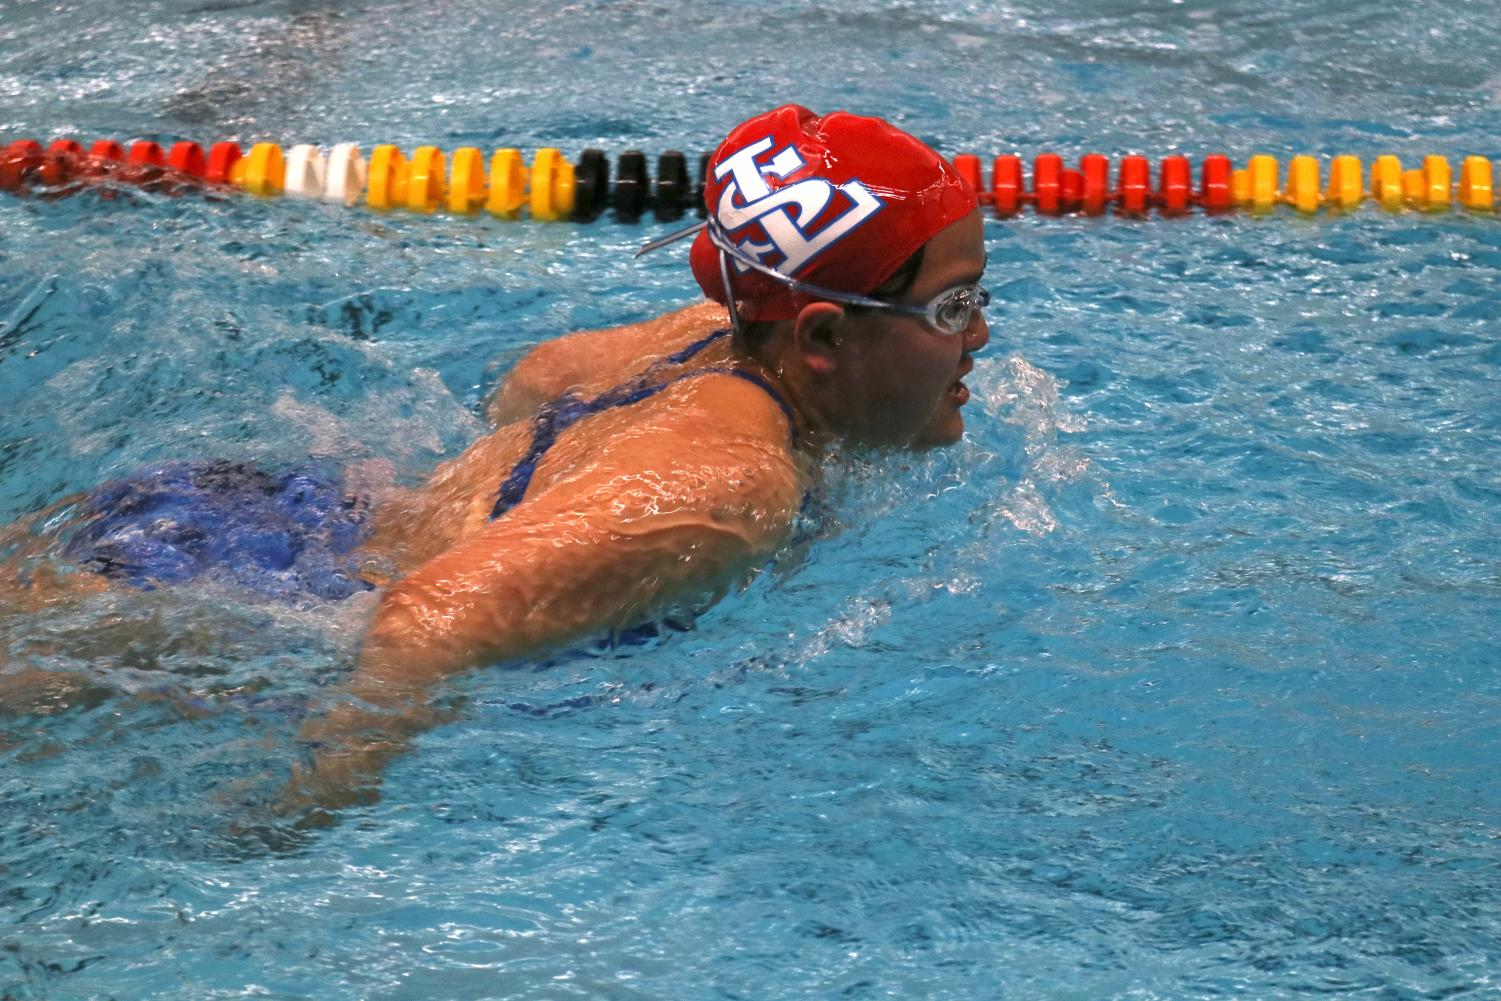 La+Salle+Swim+Team+Takes+On+Milwaukie+and+Scappoose+in+Their+Second+Meet+of+the+Season